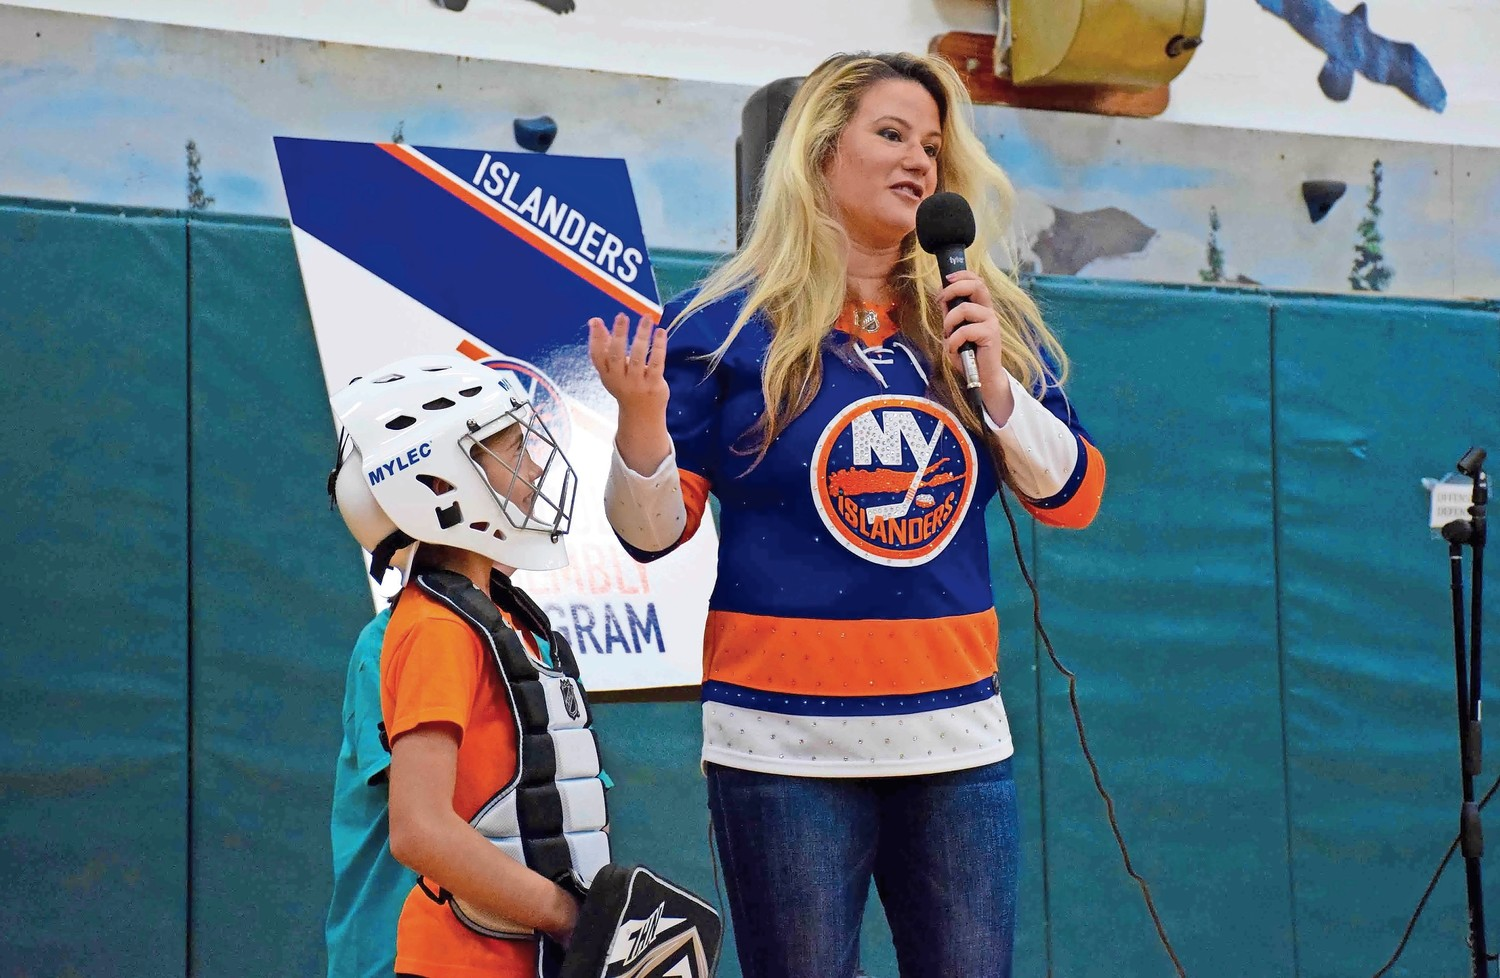 Dina Tsiorvas, a representative from the New York Islanders, spoke about teamwork while third-grader Victoria Boccil looked on.